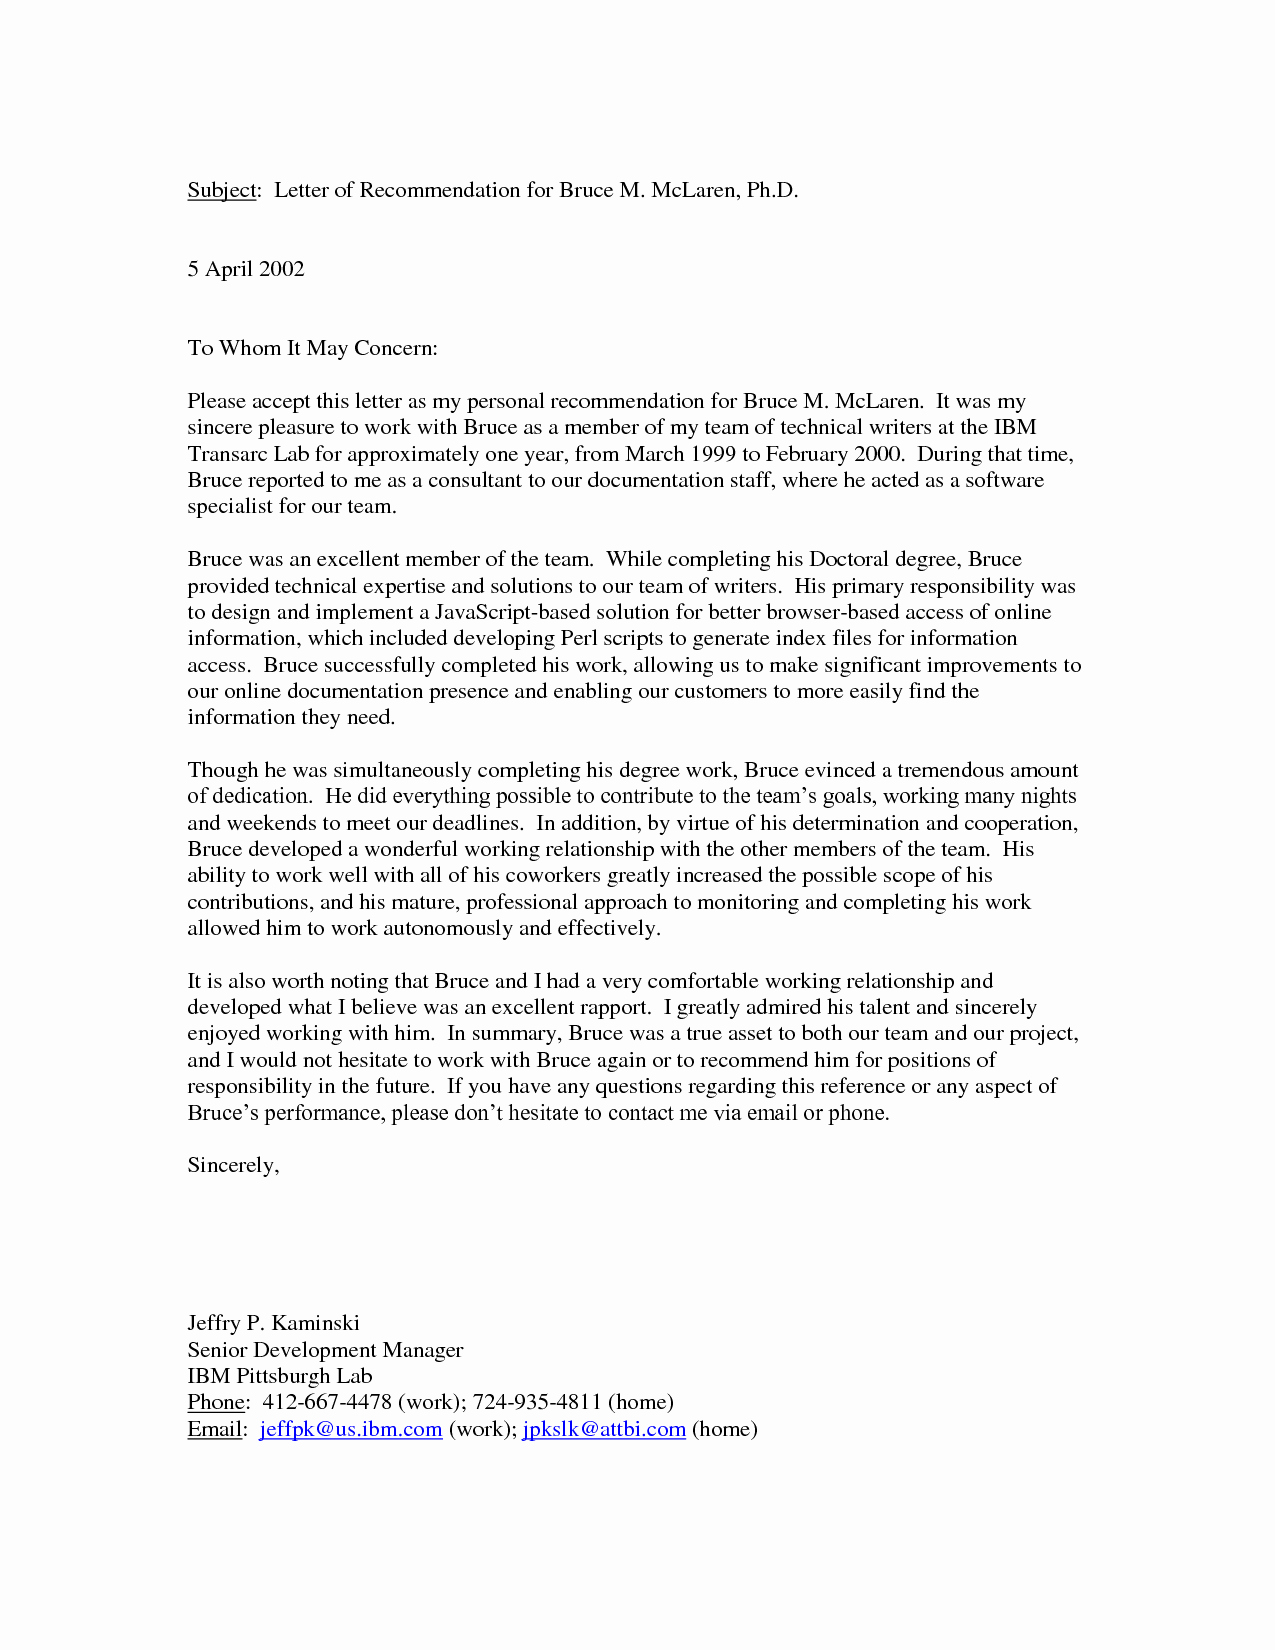 Recommendation Letter for Job Template New Personal Reference Letter Re Mendationletter